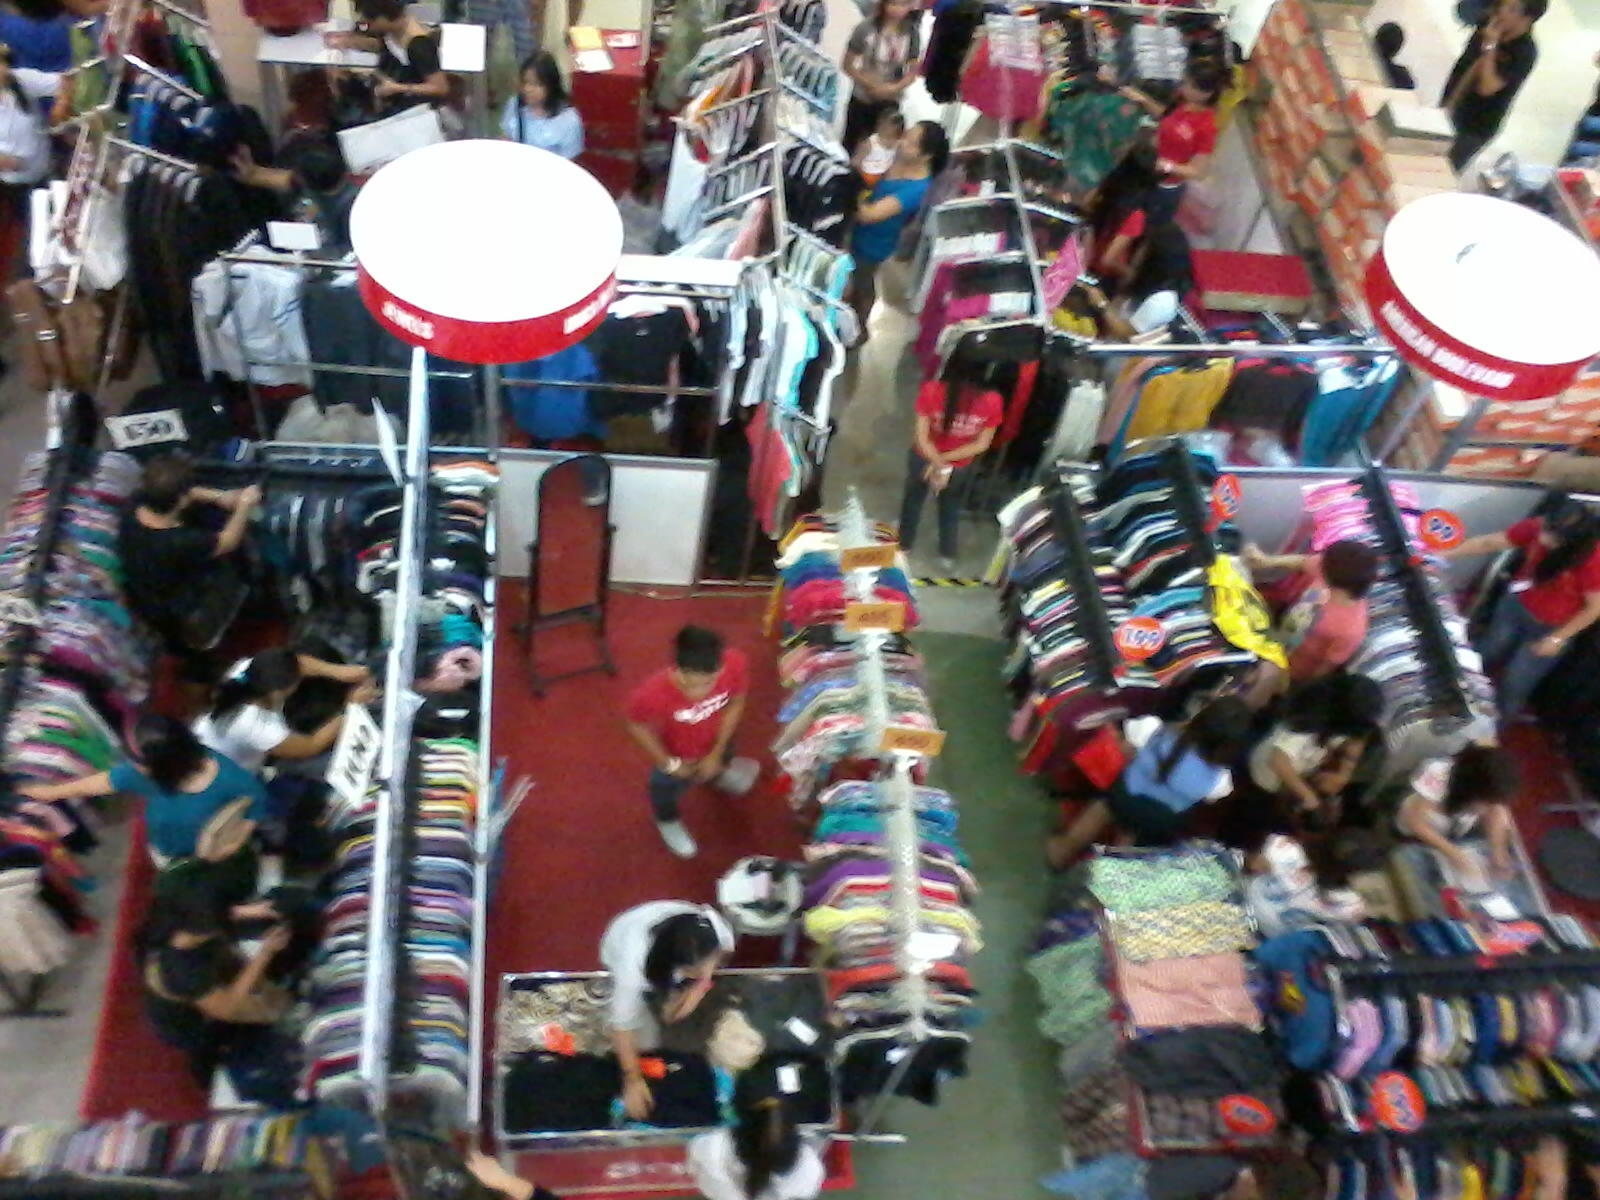 hallways are filled with sale items